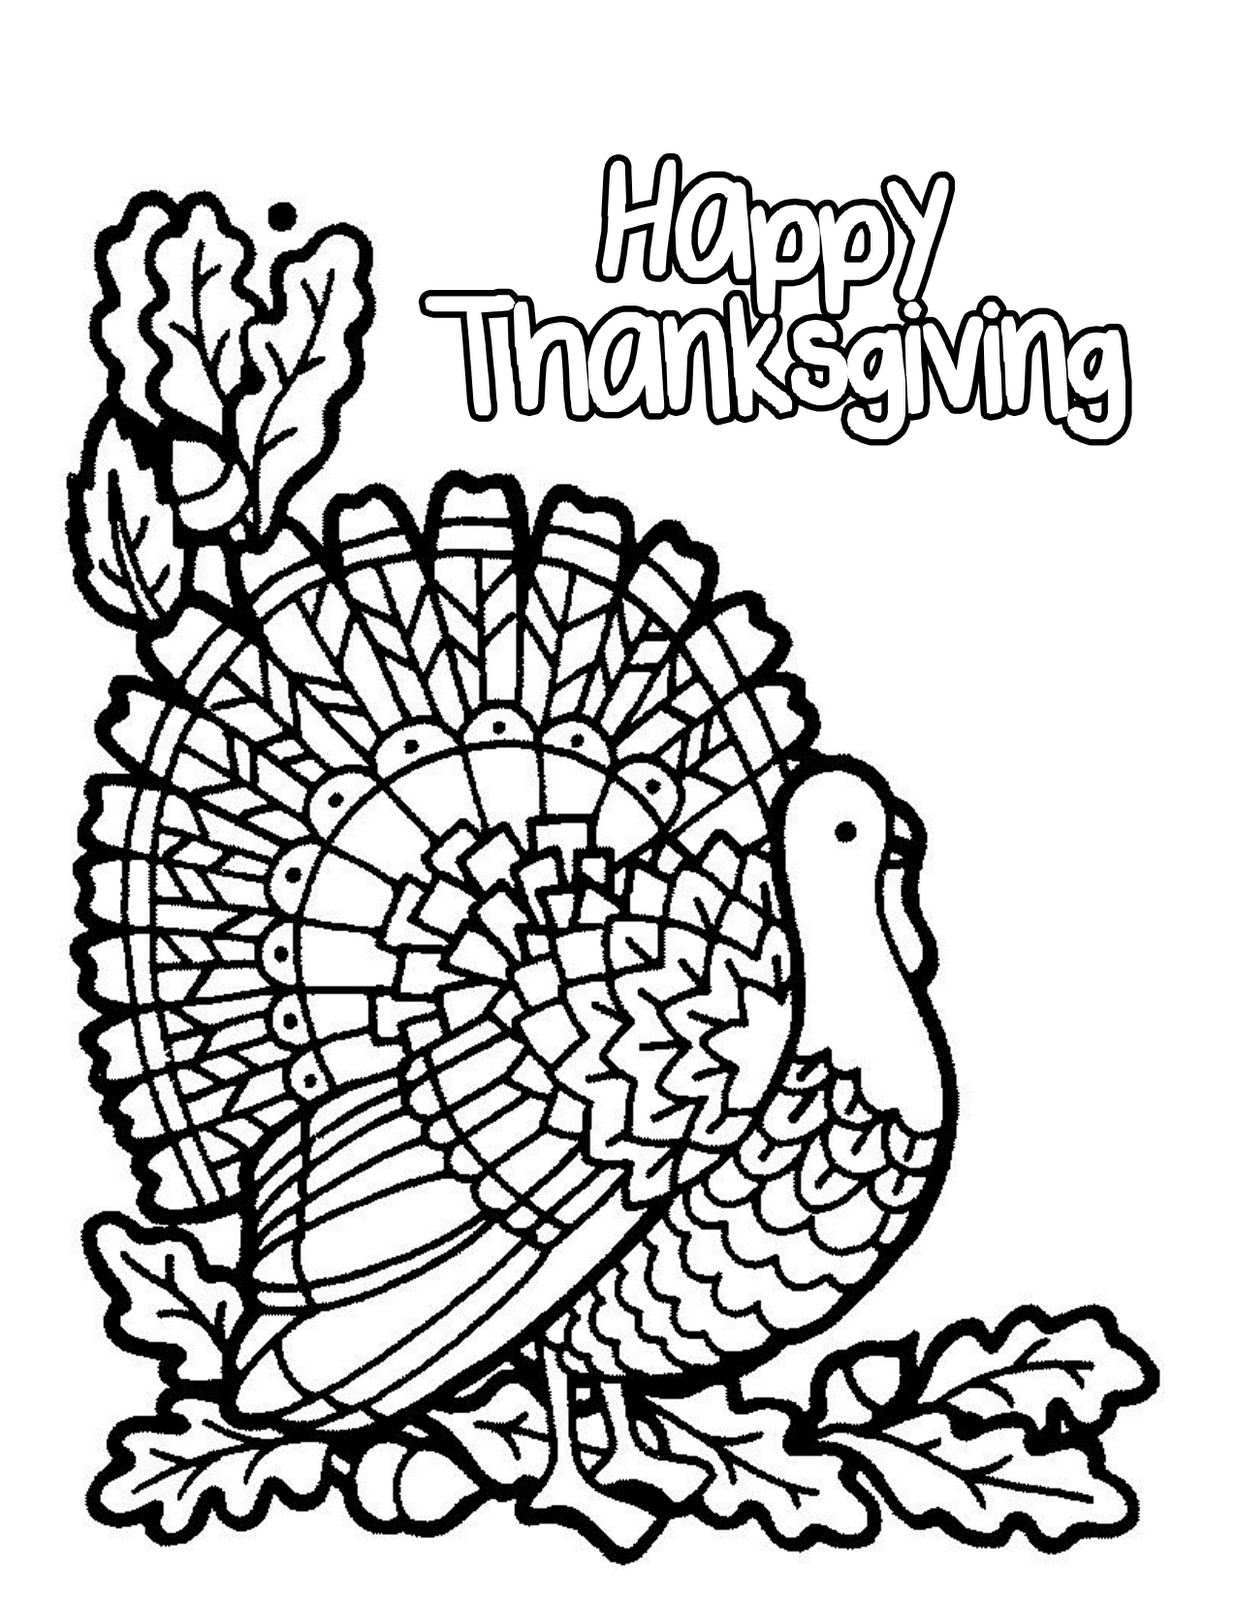 free coloring pages thanksgiving christian thanksgiving coloring pages getcoloringpagescom thanksgiving pages coloring free